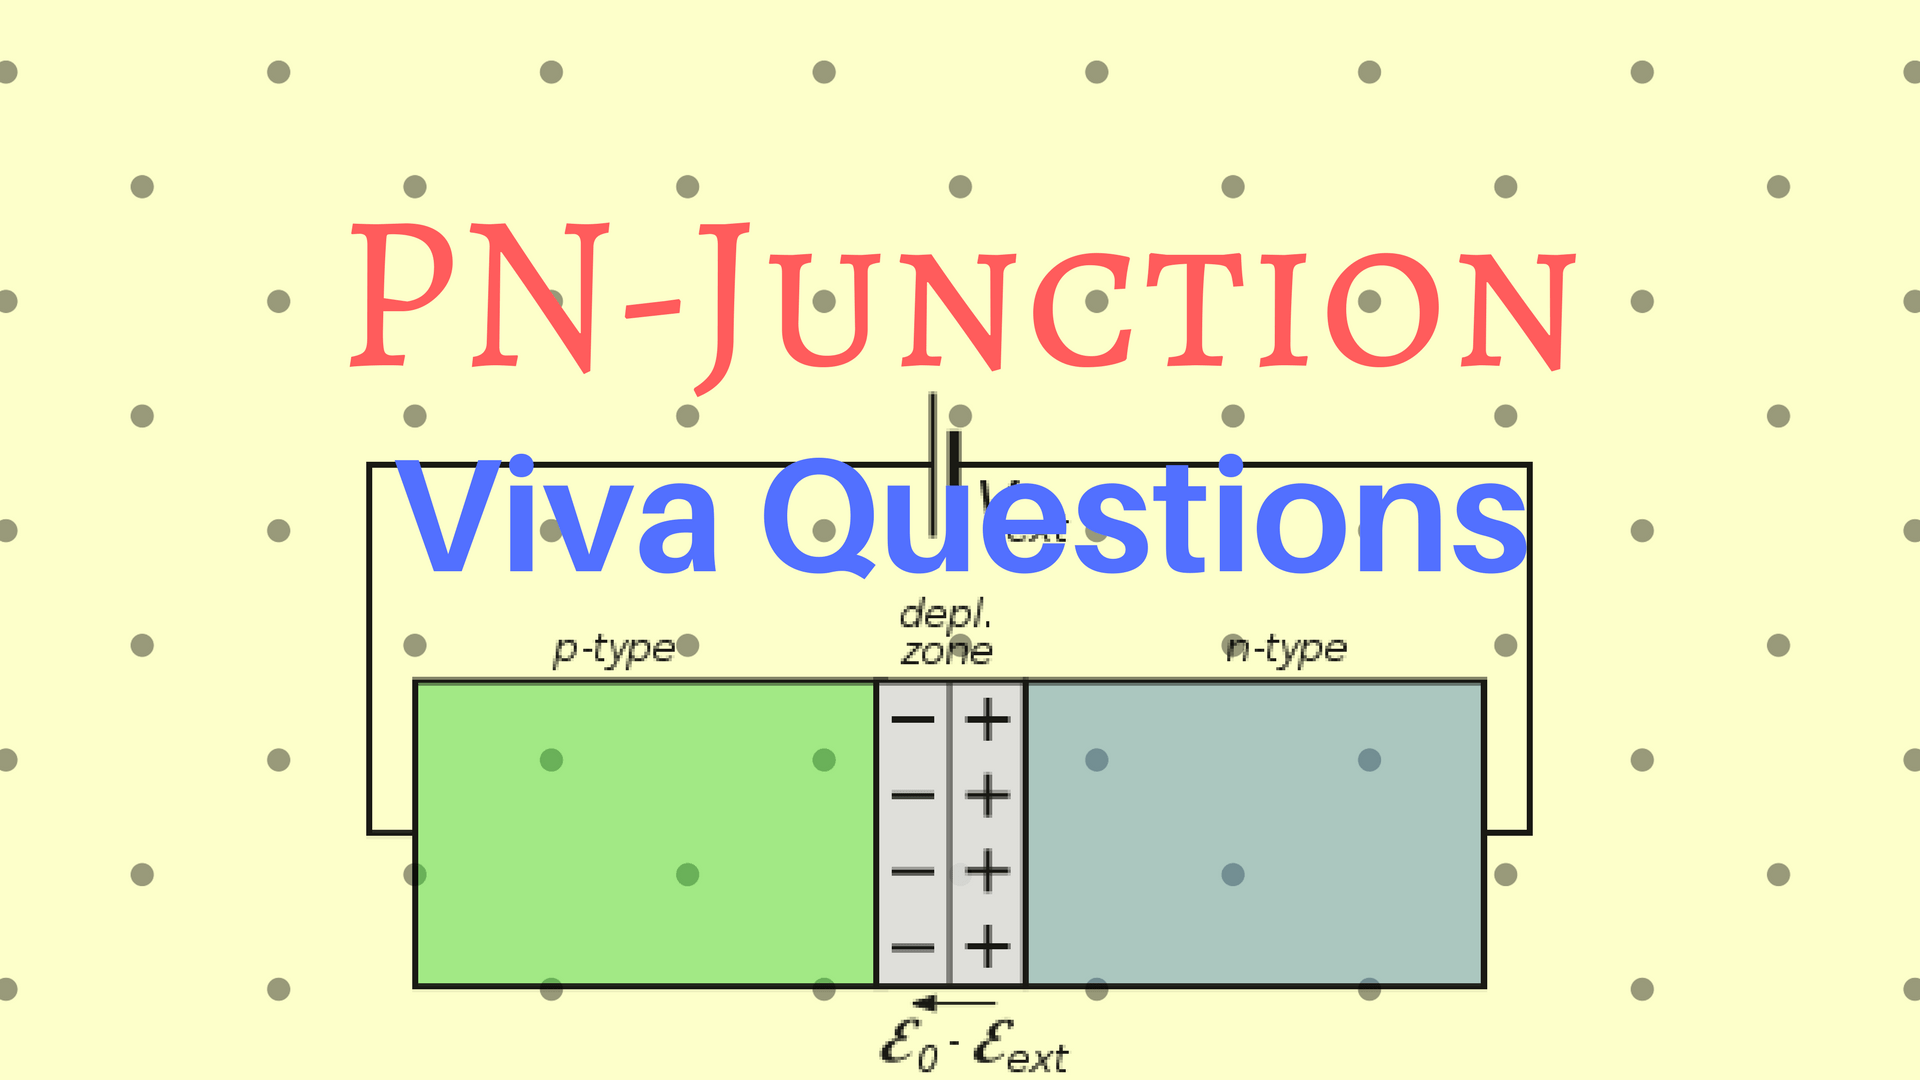 Pn Junction Viva Questions Diode And Its Characteristics The Following Are Some Of Frequently Asked Related To